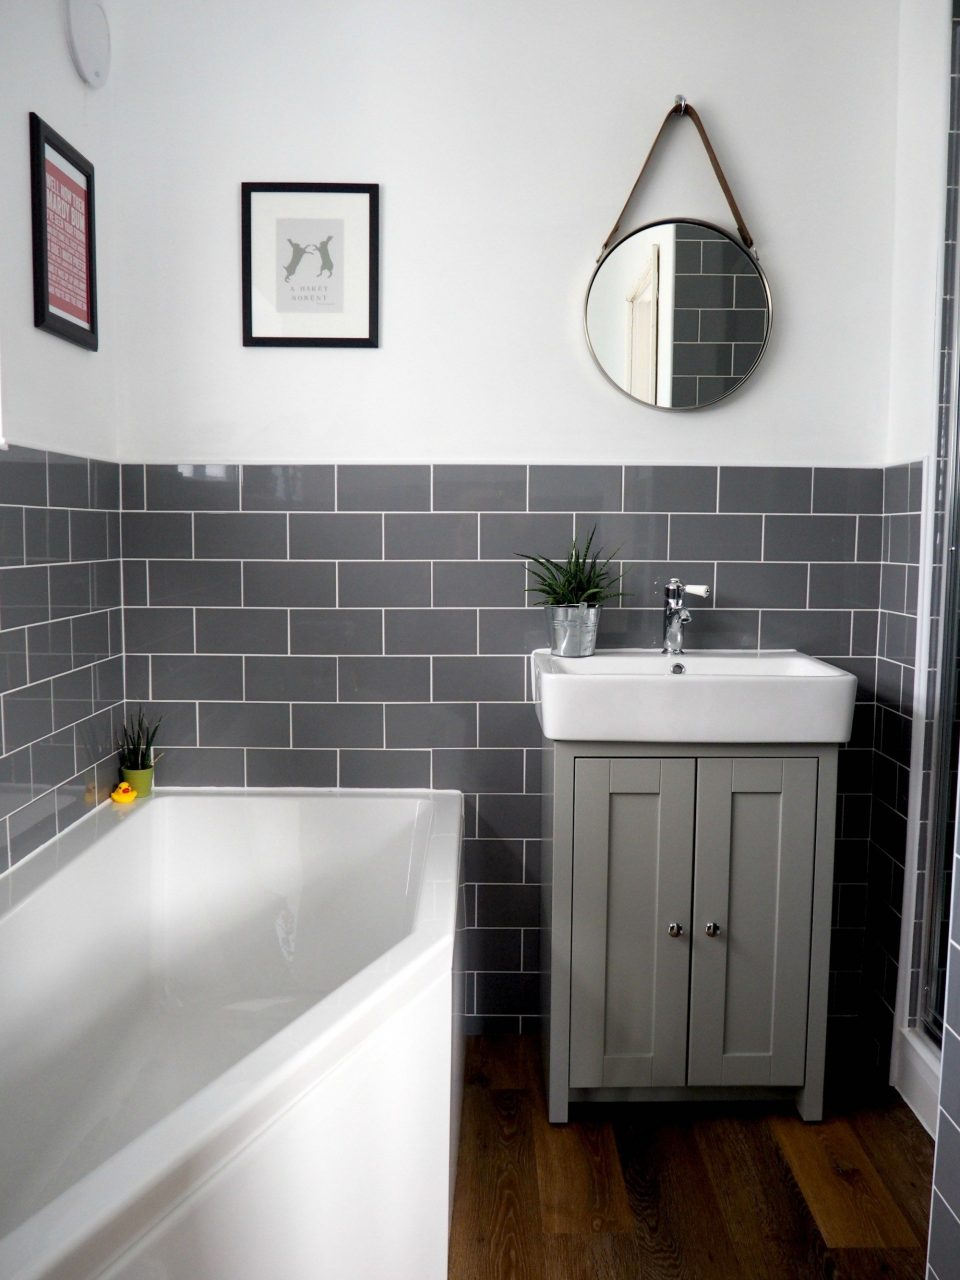 Our New Bathroom Renovation Bathroom Beauties Pinterest